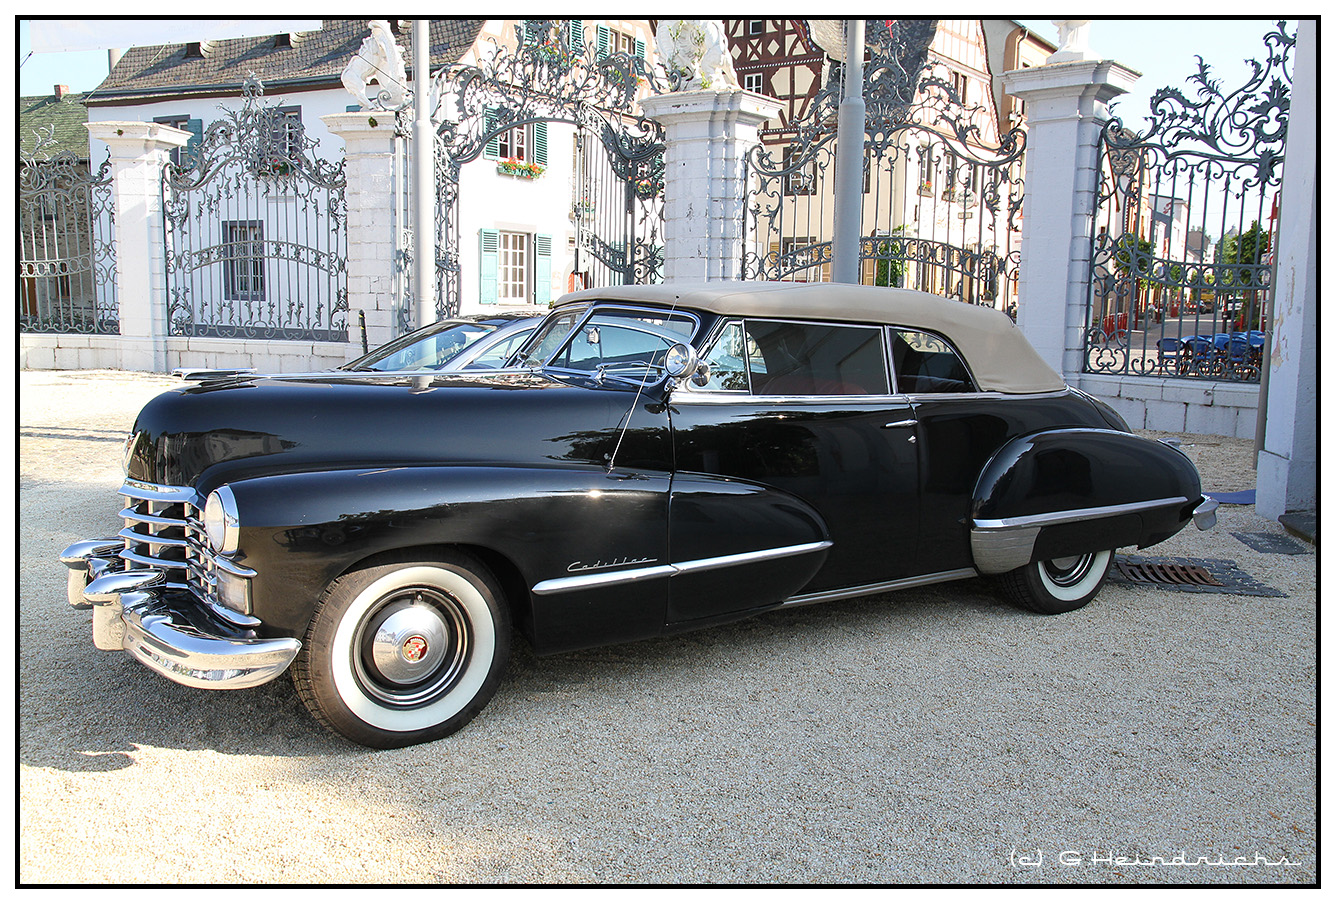 Cadillac Series 61 Sedanette Coupe - 1949